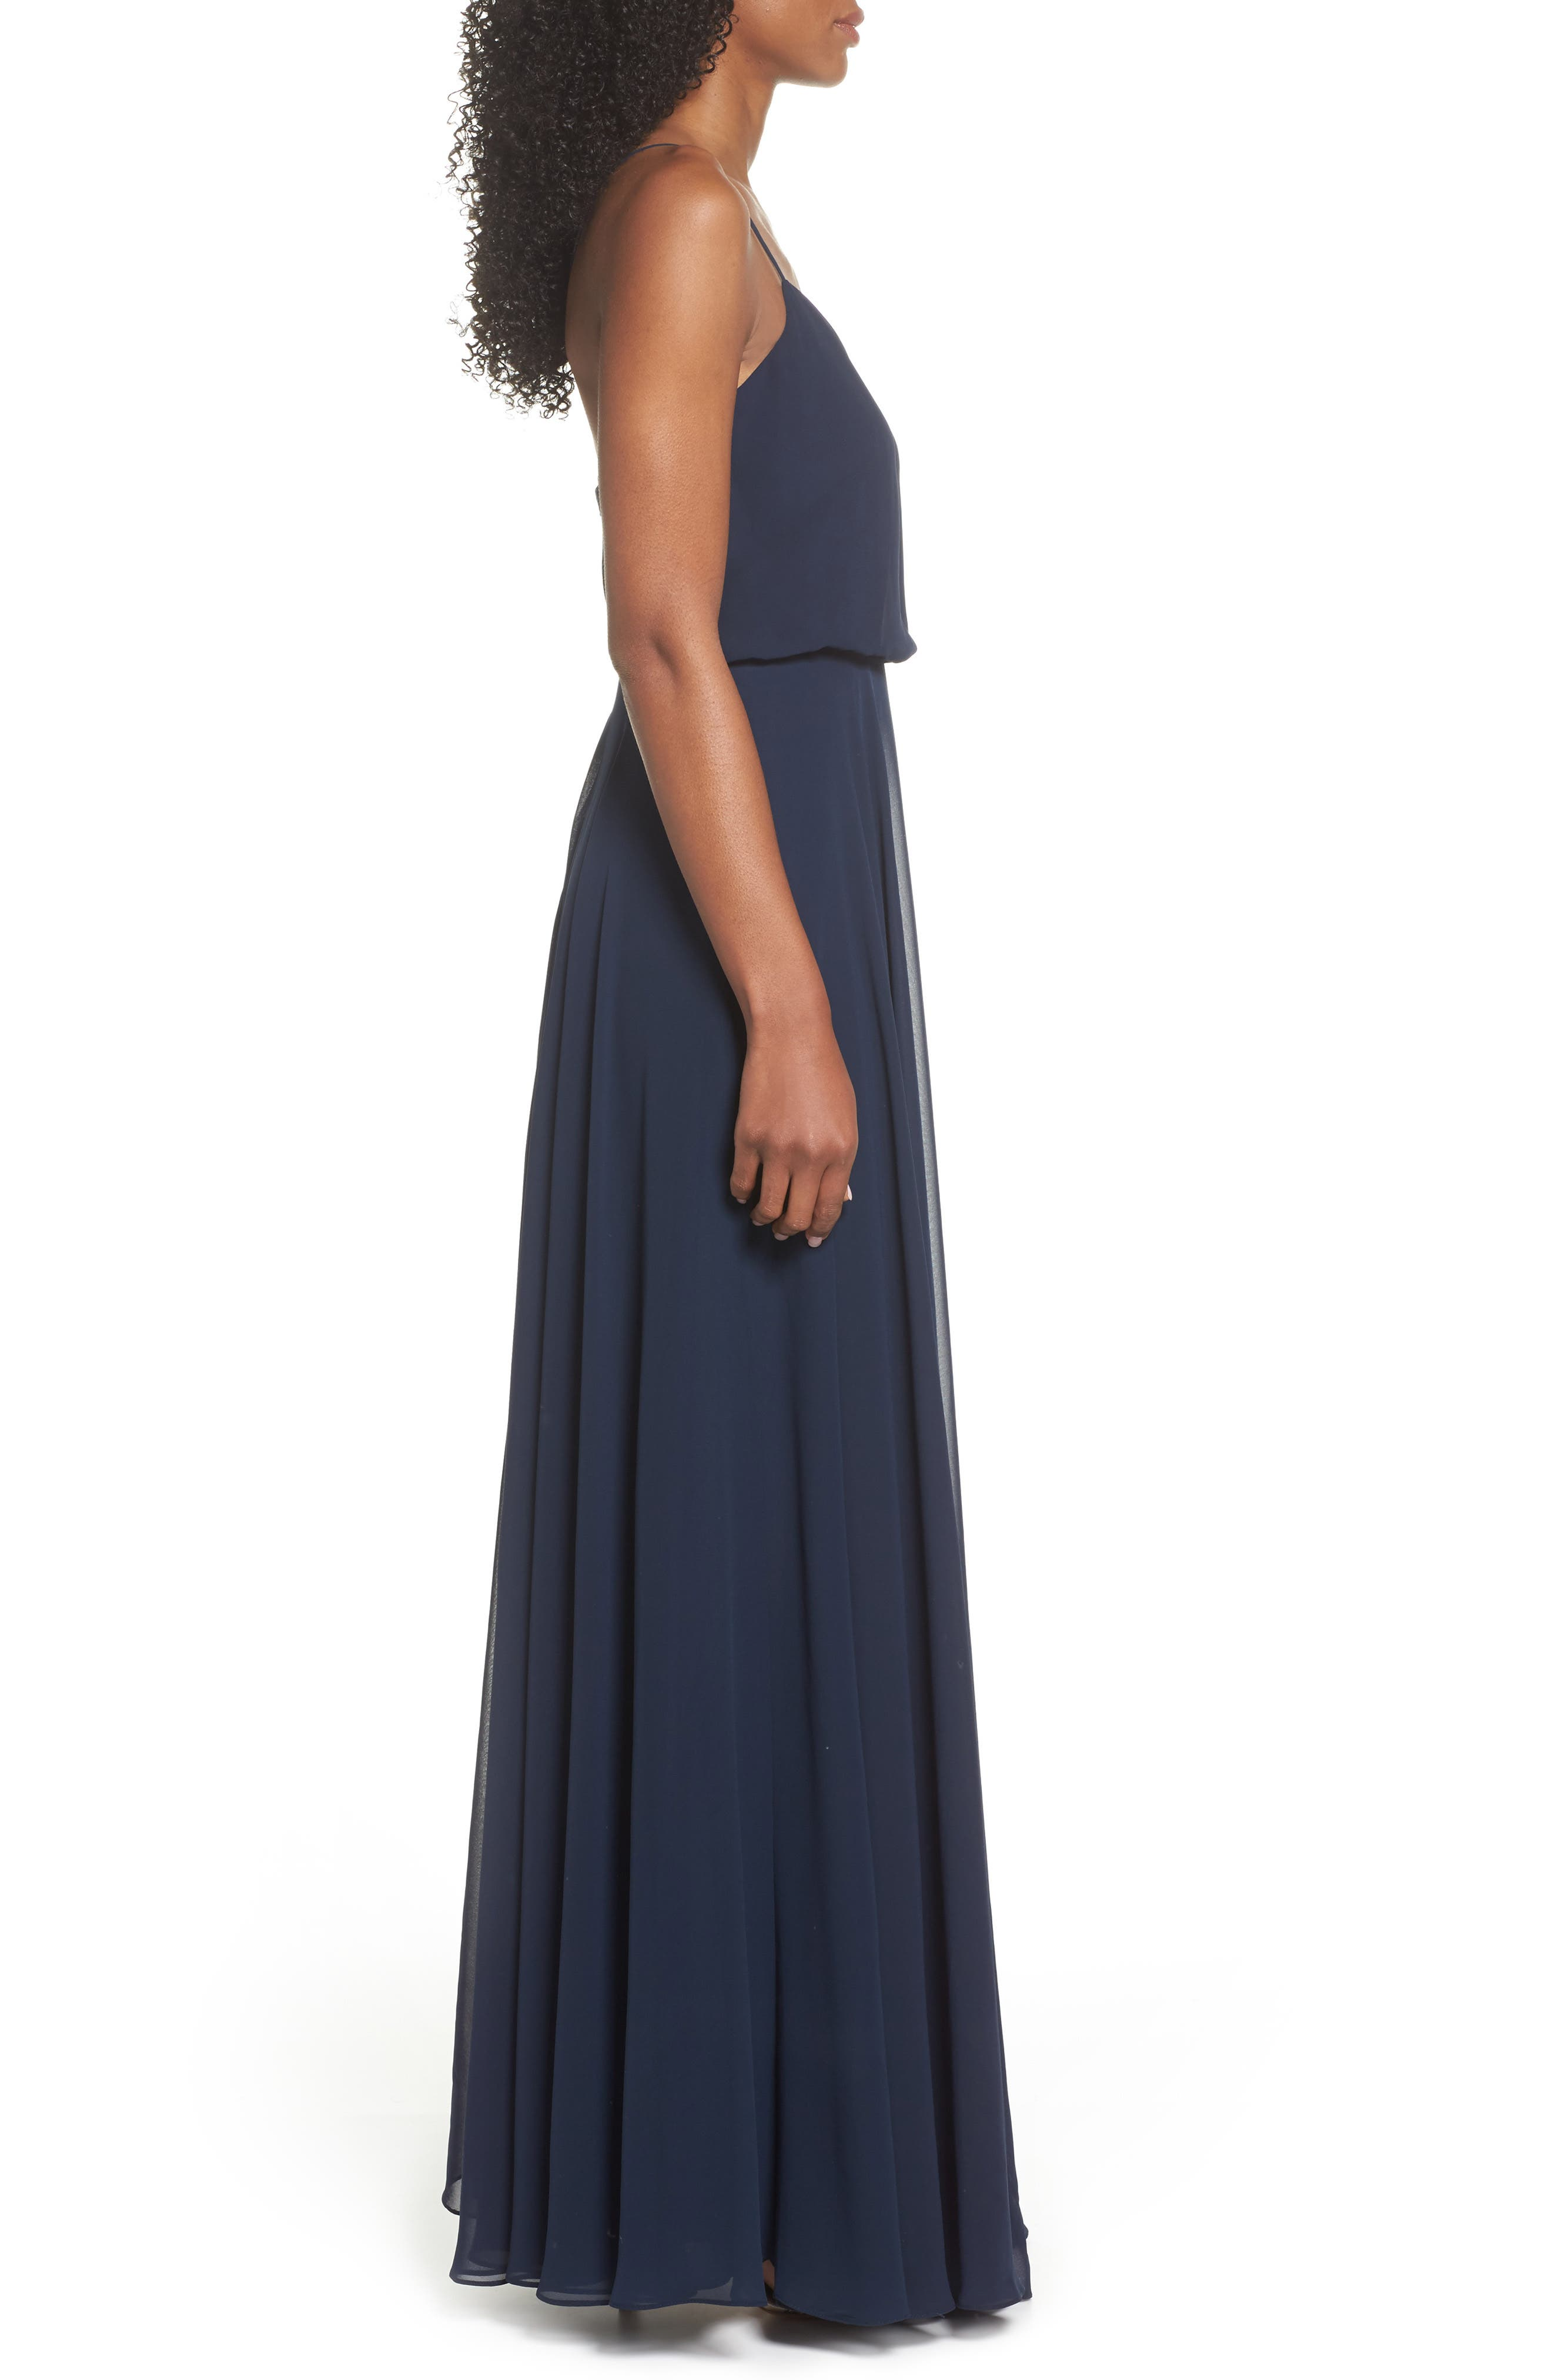 Inesse Chiffon V-Neck Spaghetti Strap Gown,                             Alternate thumbnail 3, color,                             NAVY